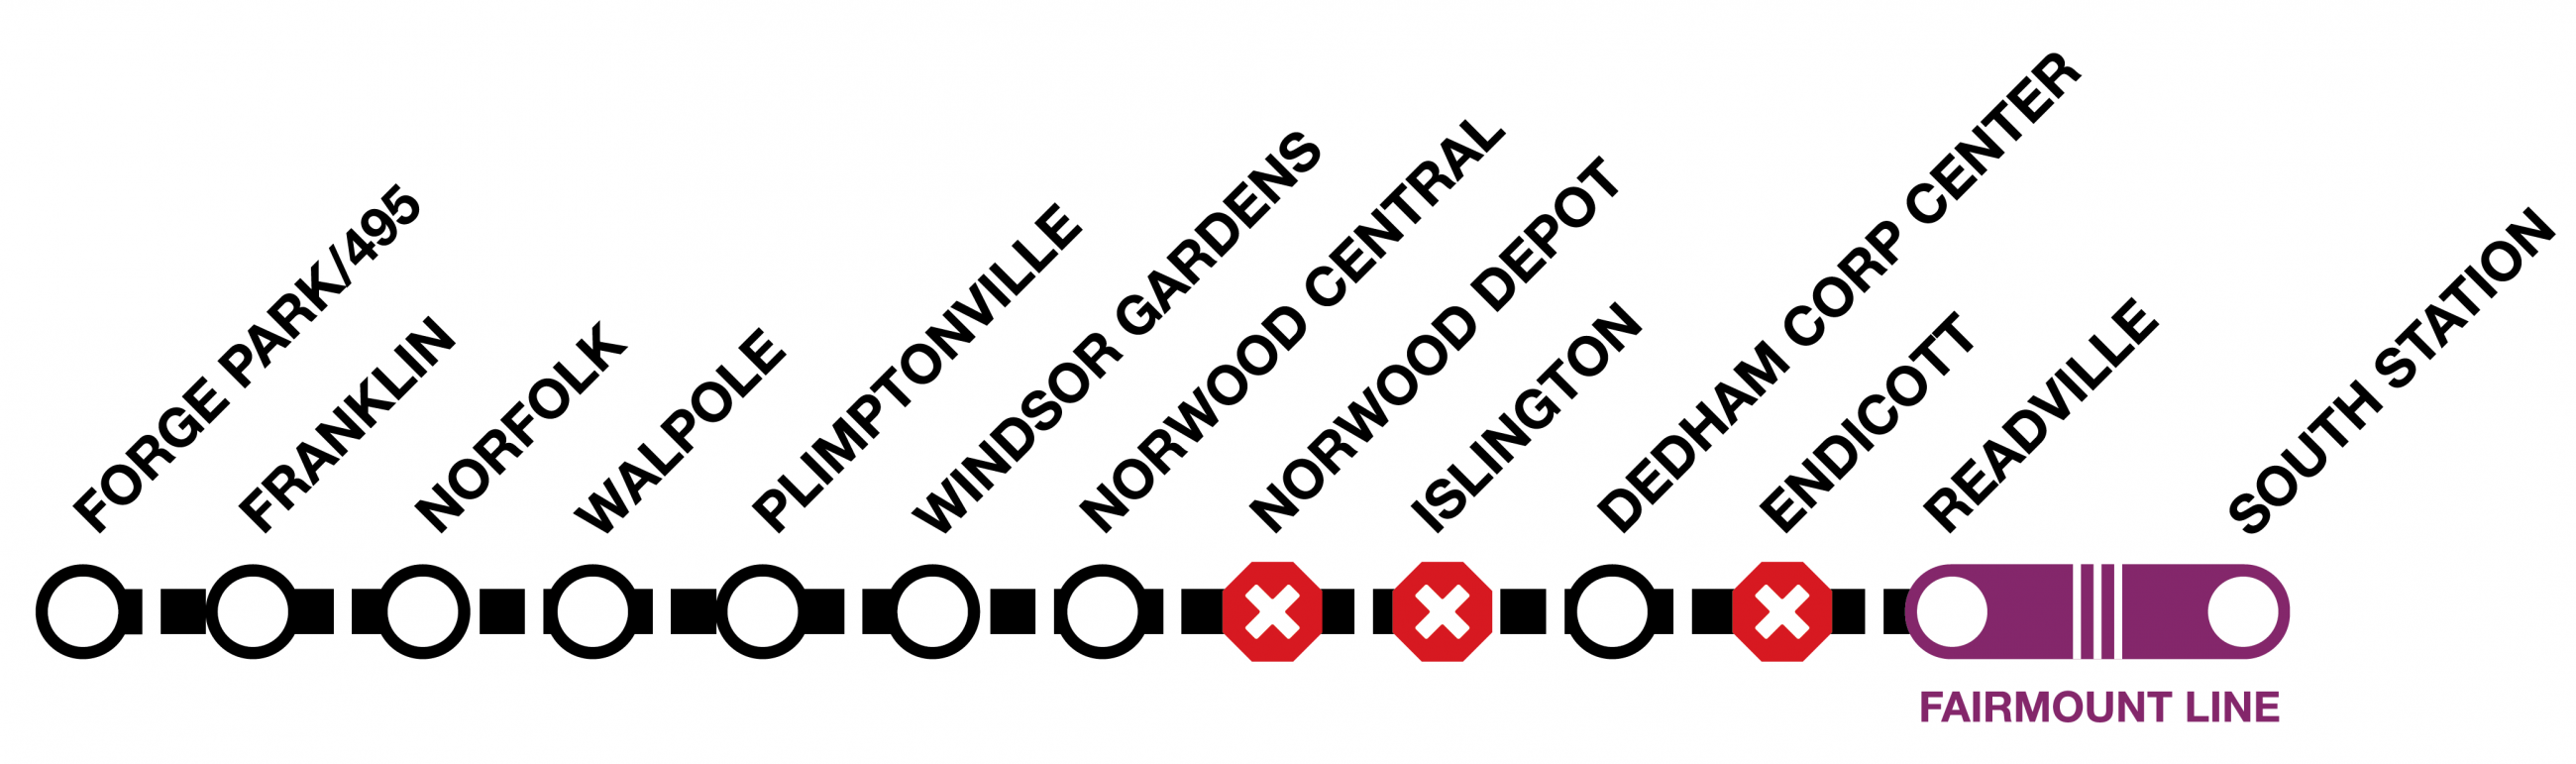 Line graphic of the Franklin line, showing shuttles between Forge Park and Readville. Shuttles do not stop at Norwood Depot, Islington, or Endicott. From Readville to South Station, trains will run on the Fairmount Line.